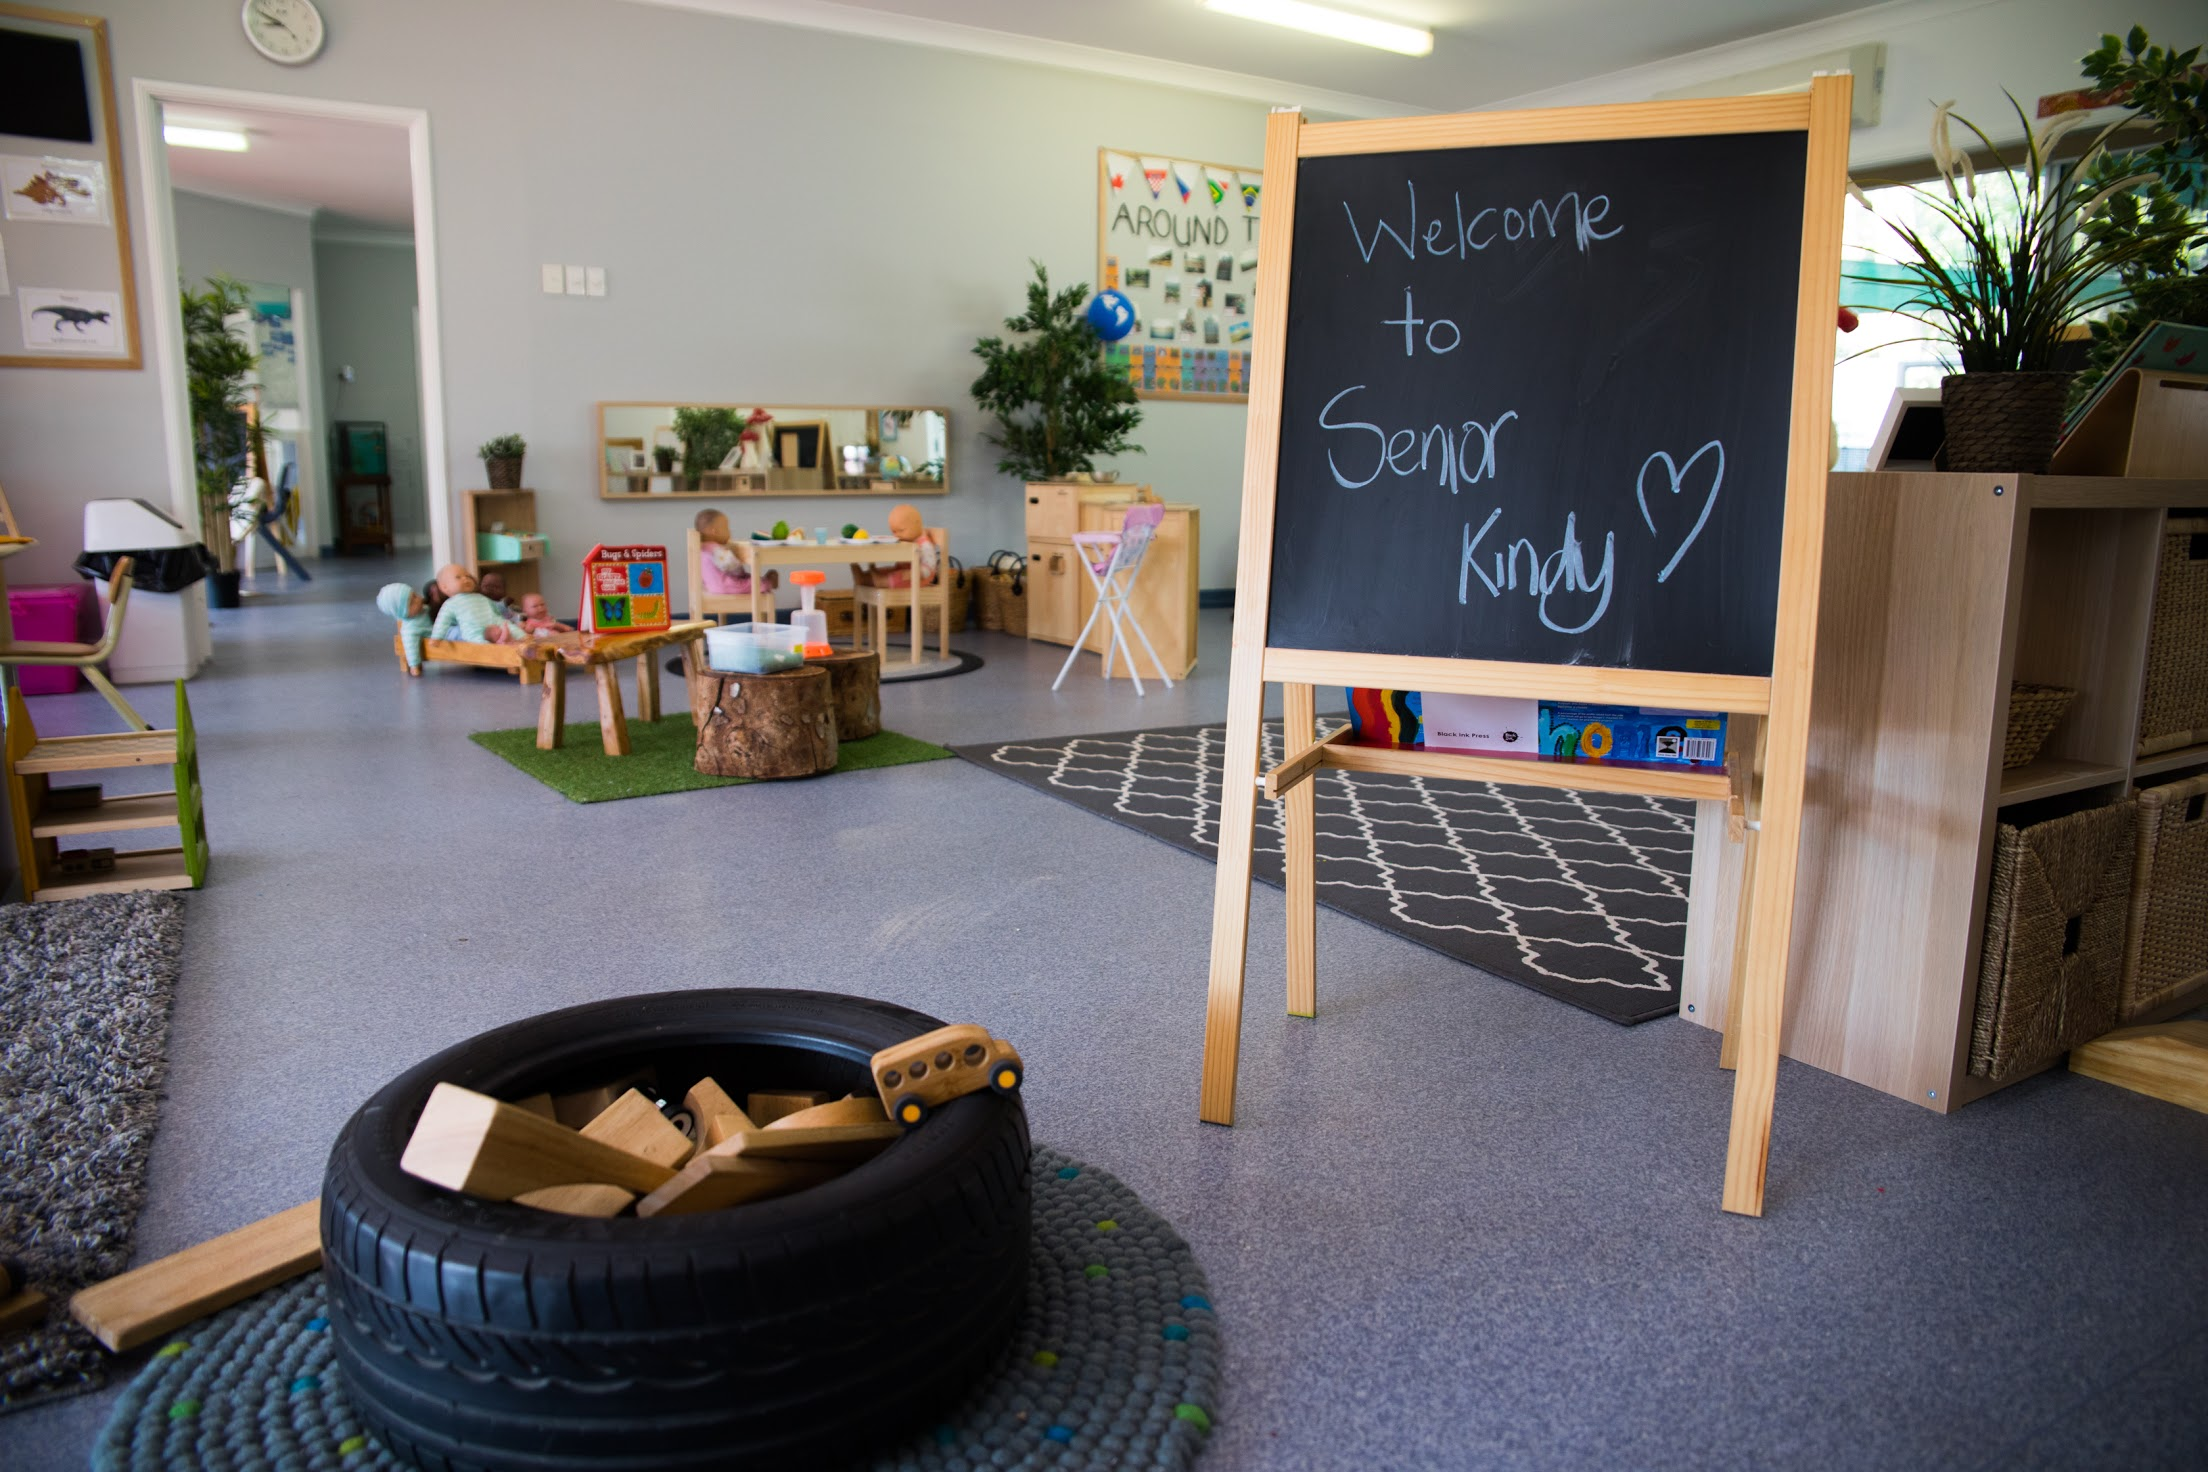 Little Scholars School Of Early Learning Nerang | 67/71 Crusader Way, Nerang, Queensland 4211 | +61 7 5596 0892